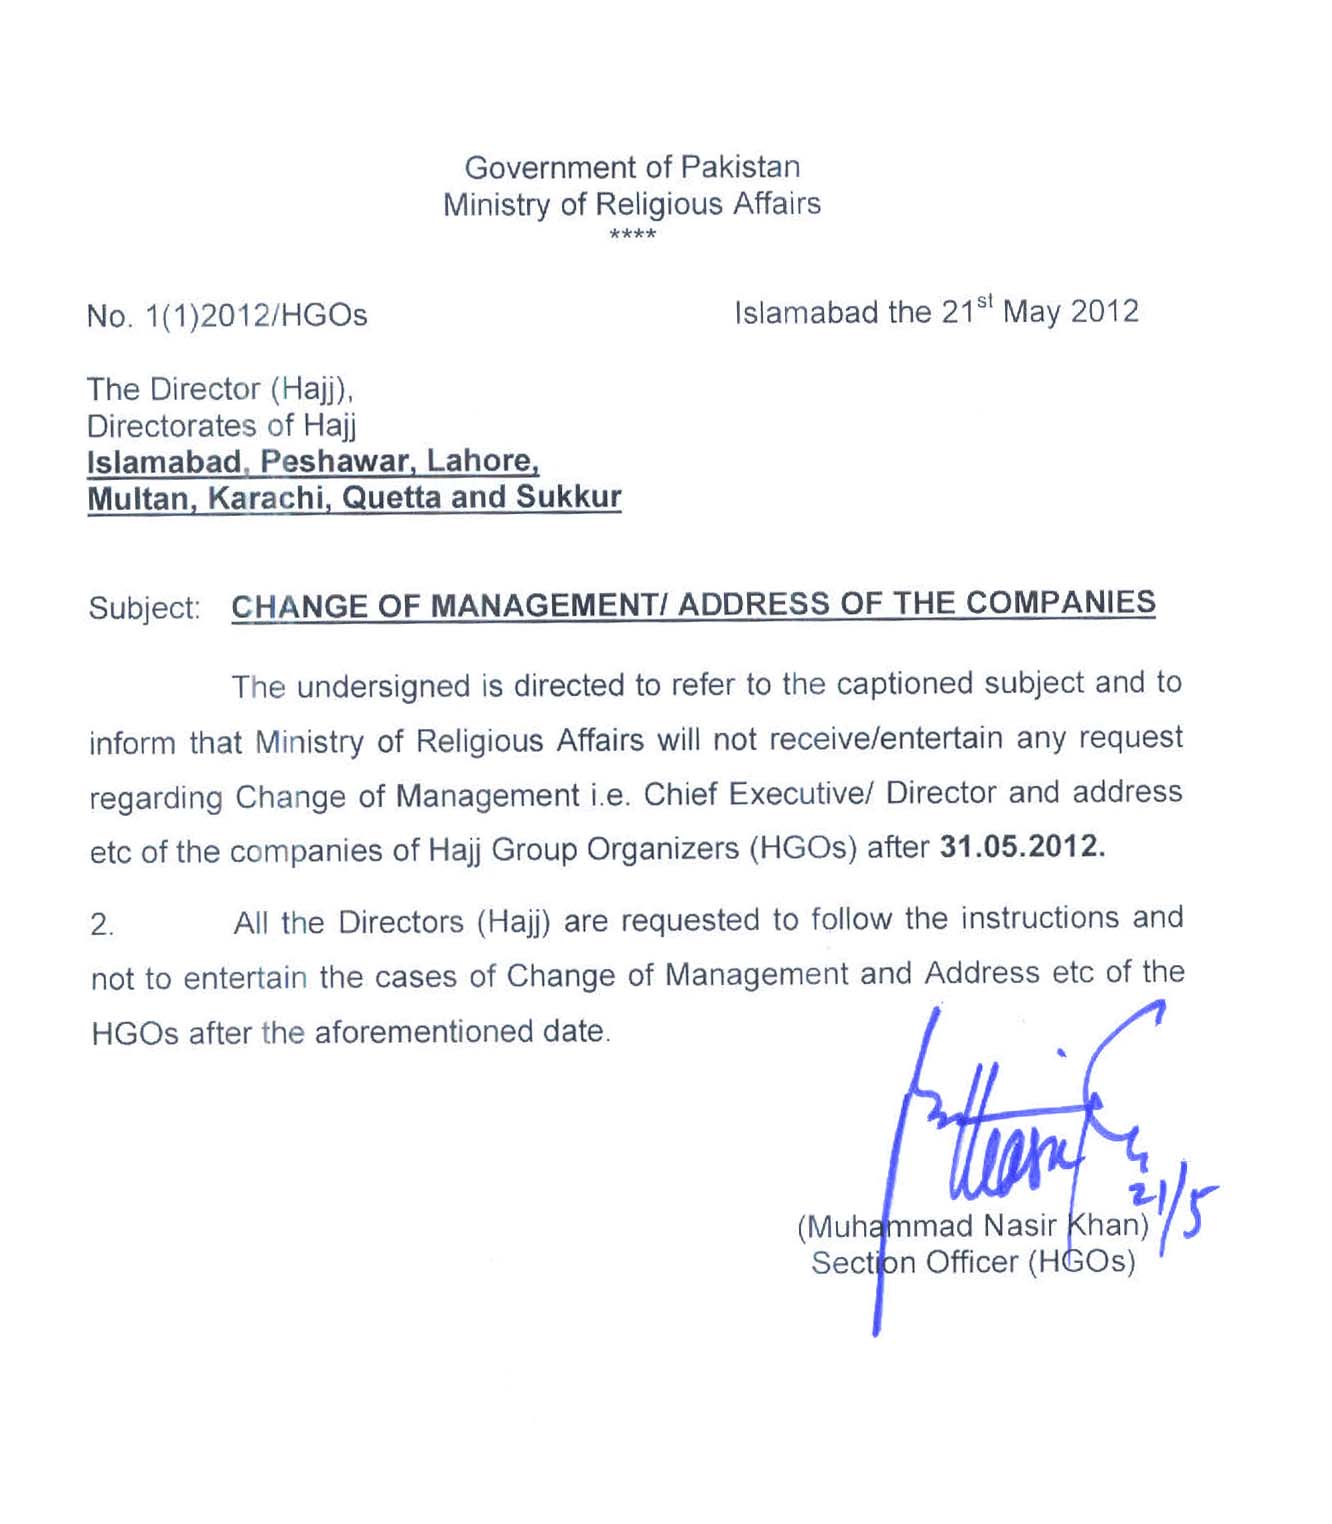 Salary Increase Request Letter Sample marwer – Request for Salary Increase Letter